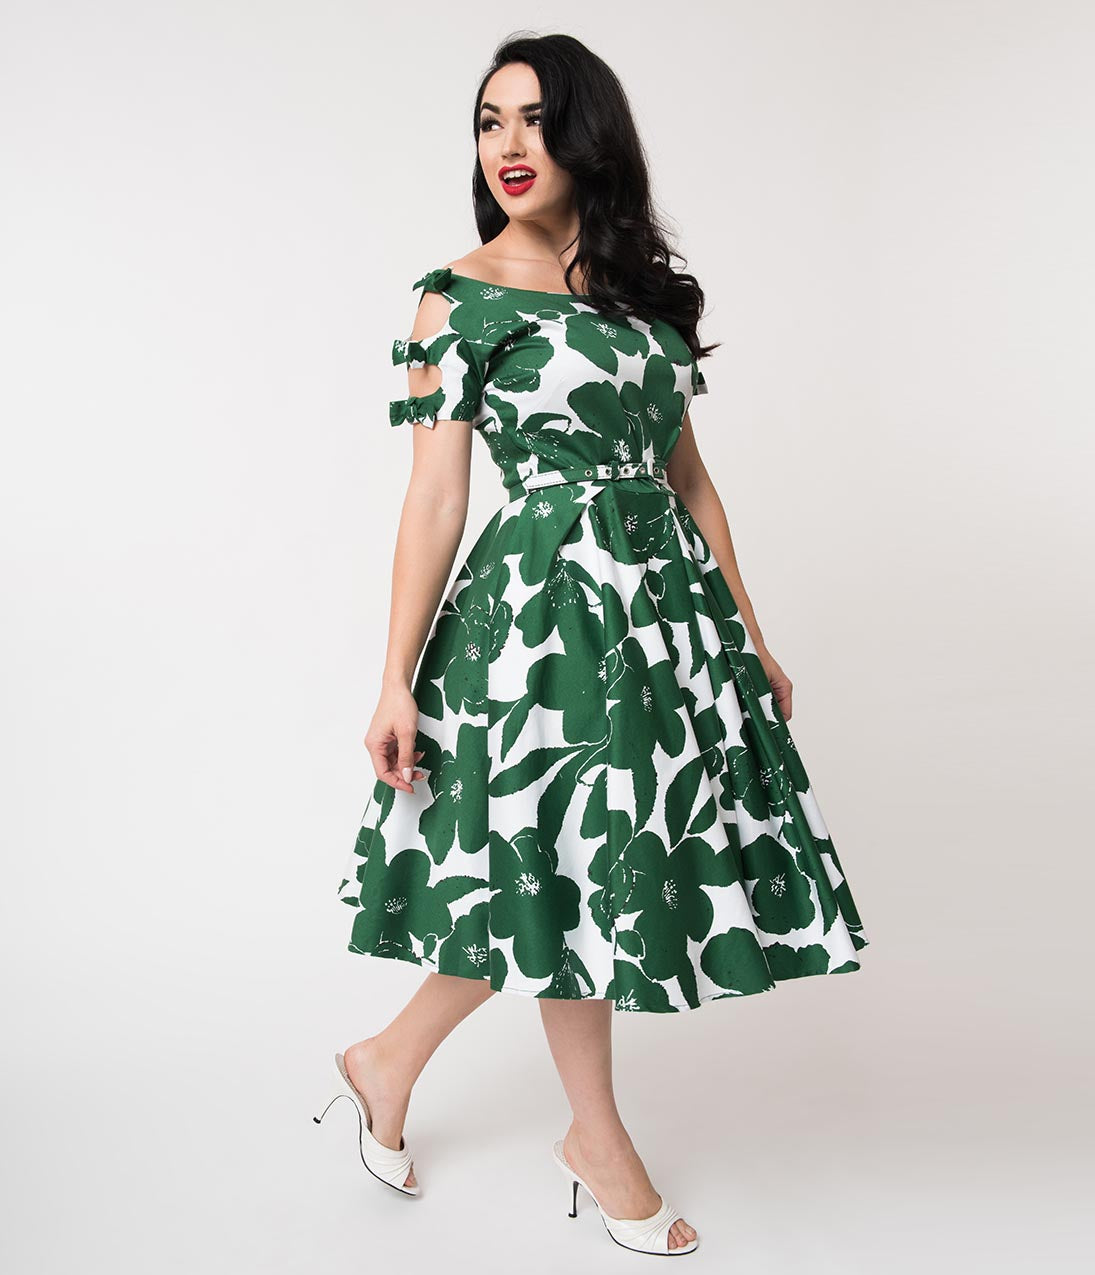 New Fifties Dresses | 50s Inspired Dresses Unique Vintage 1950S White  Green Floral Bow Sleeve Selma Swing Dress $98.00 AT vintagedancer.com